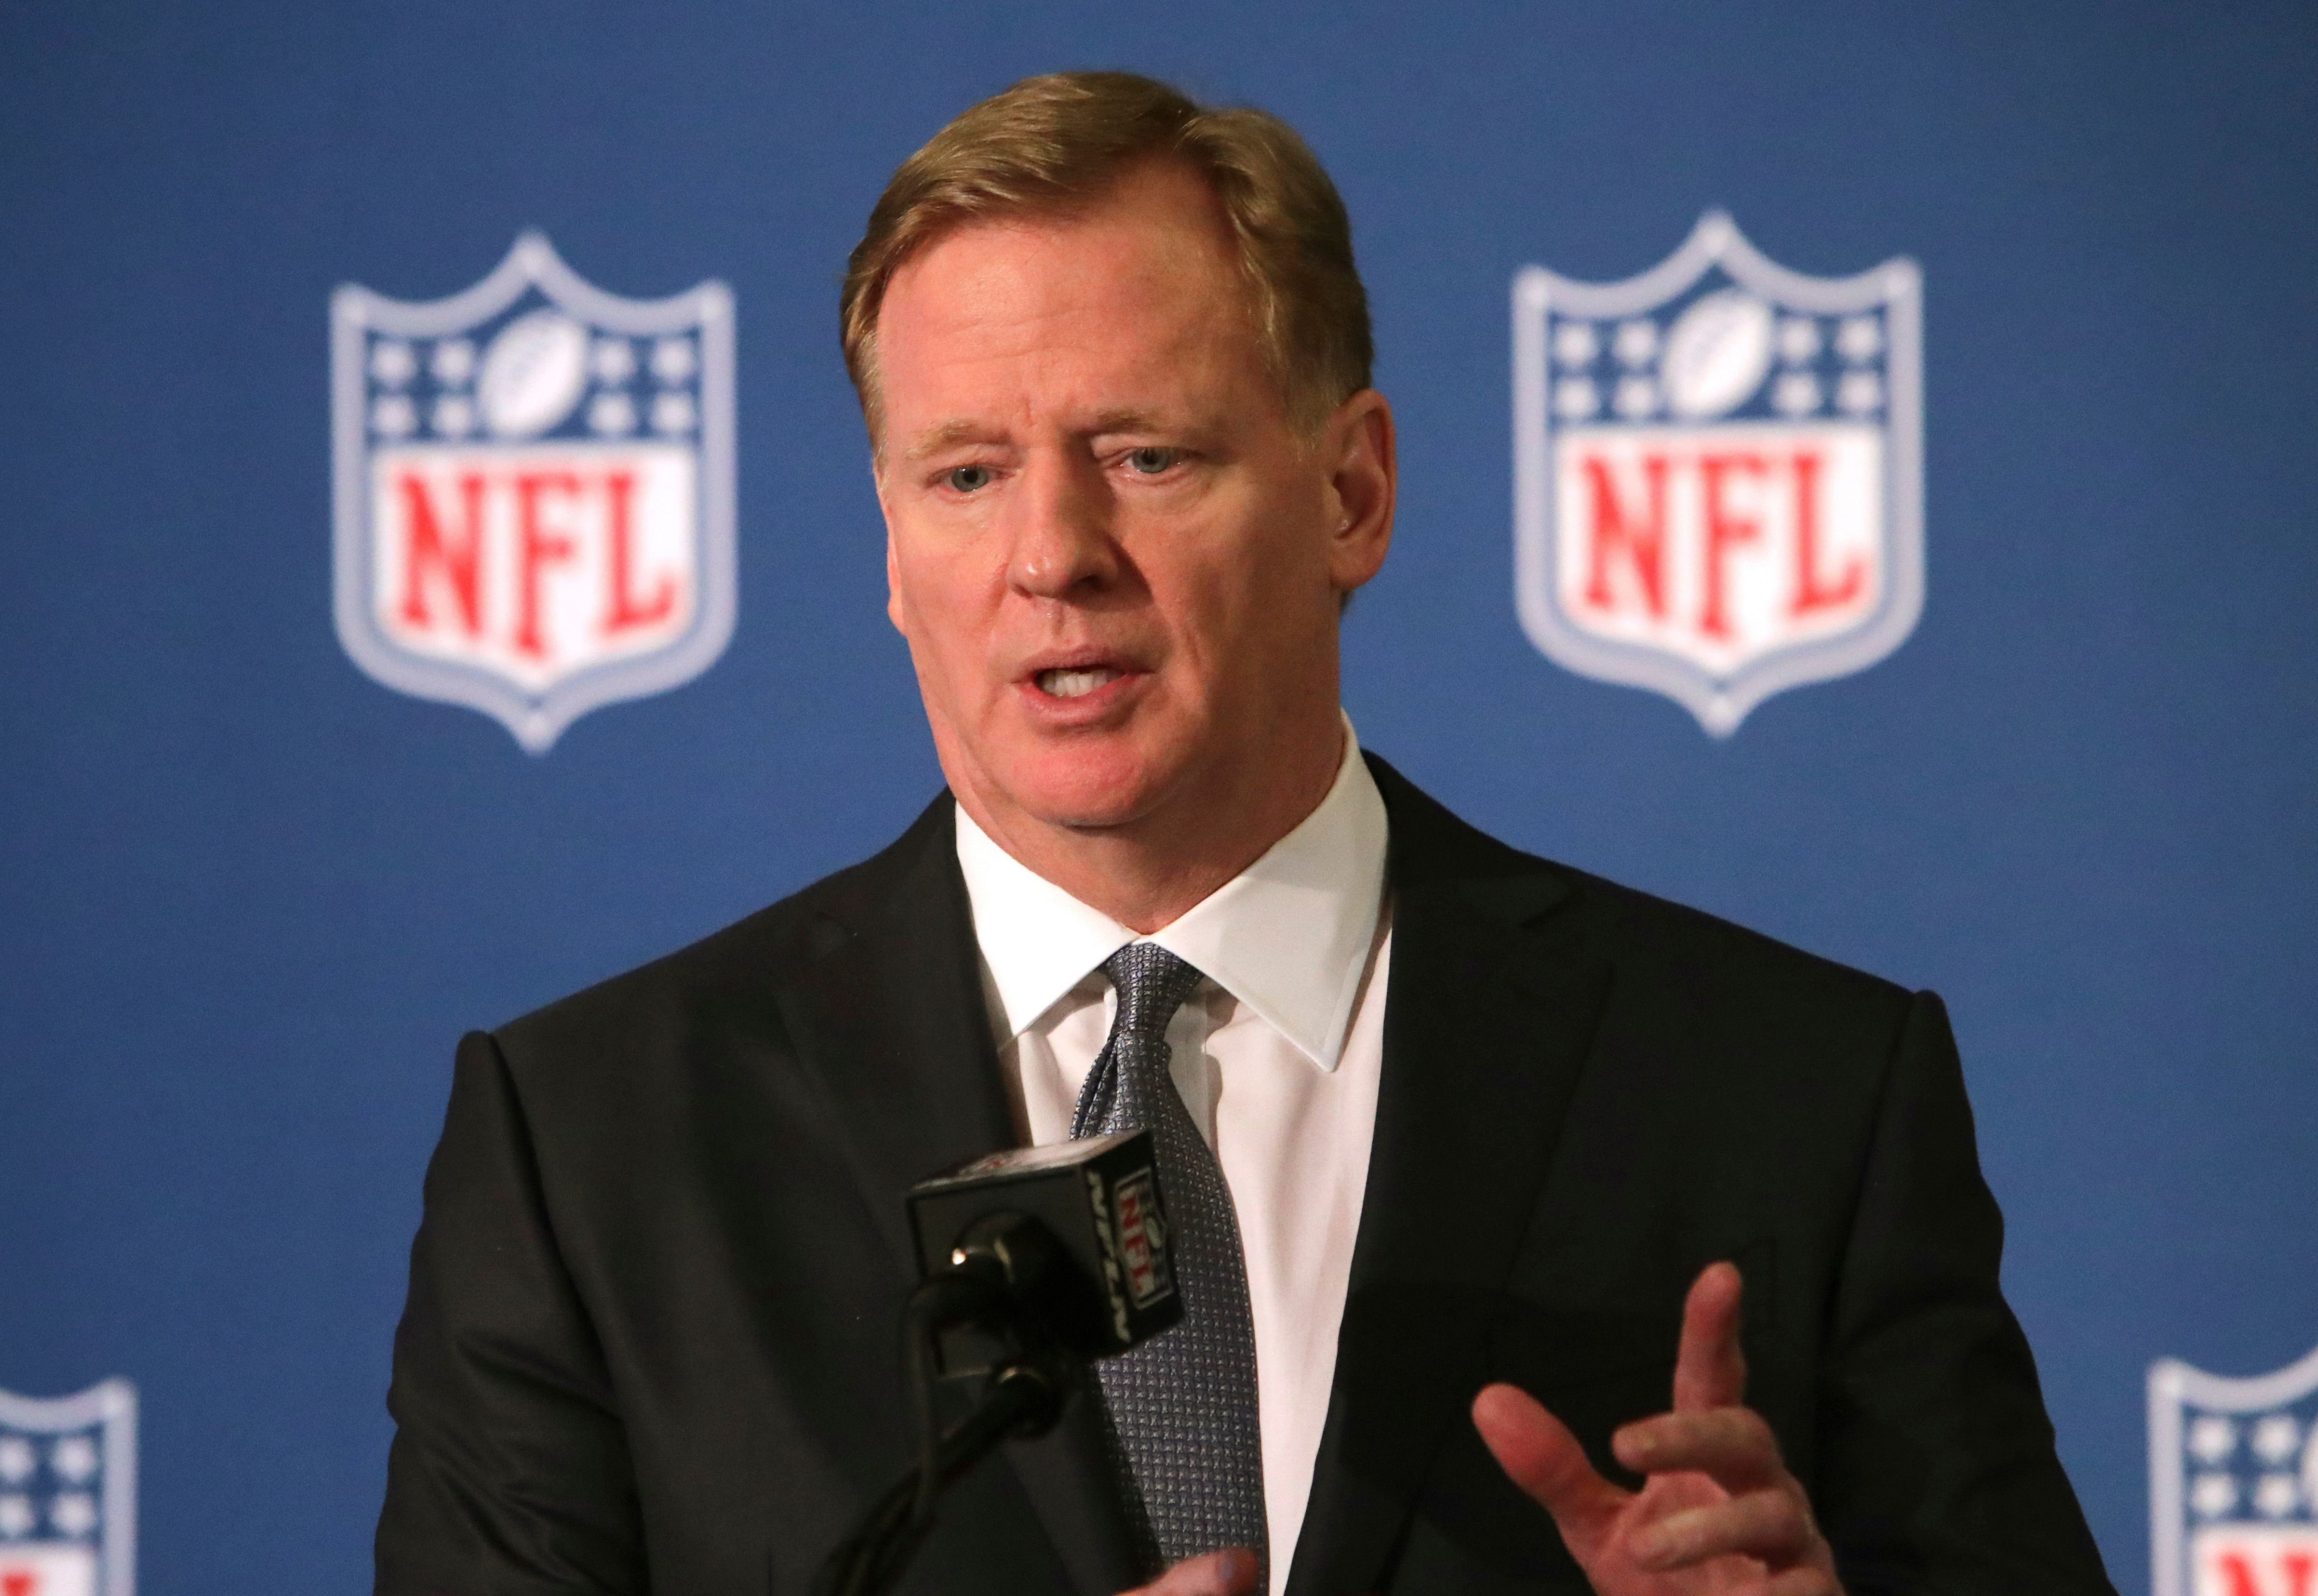 Goodell: NFL won't pay for video in domestic